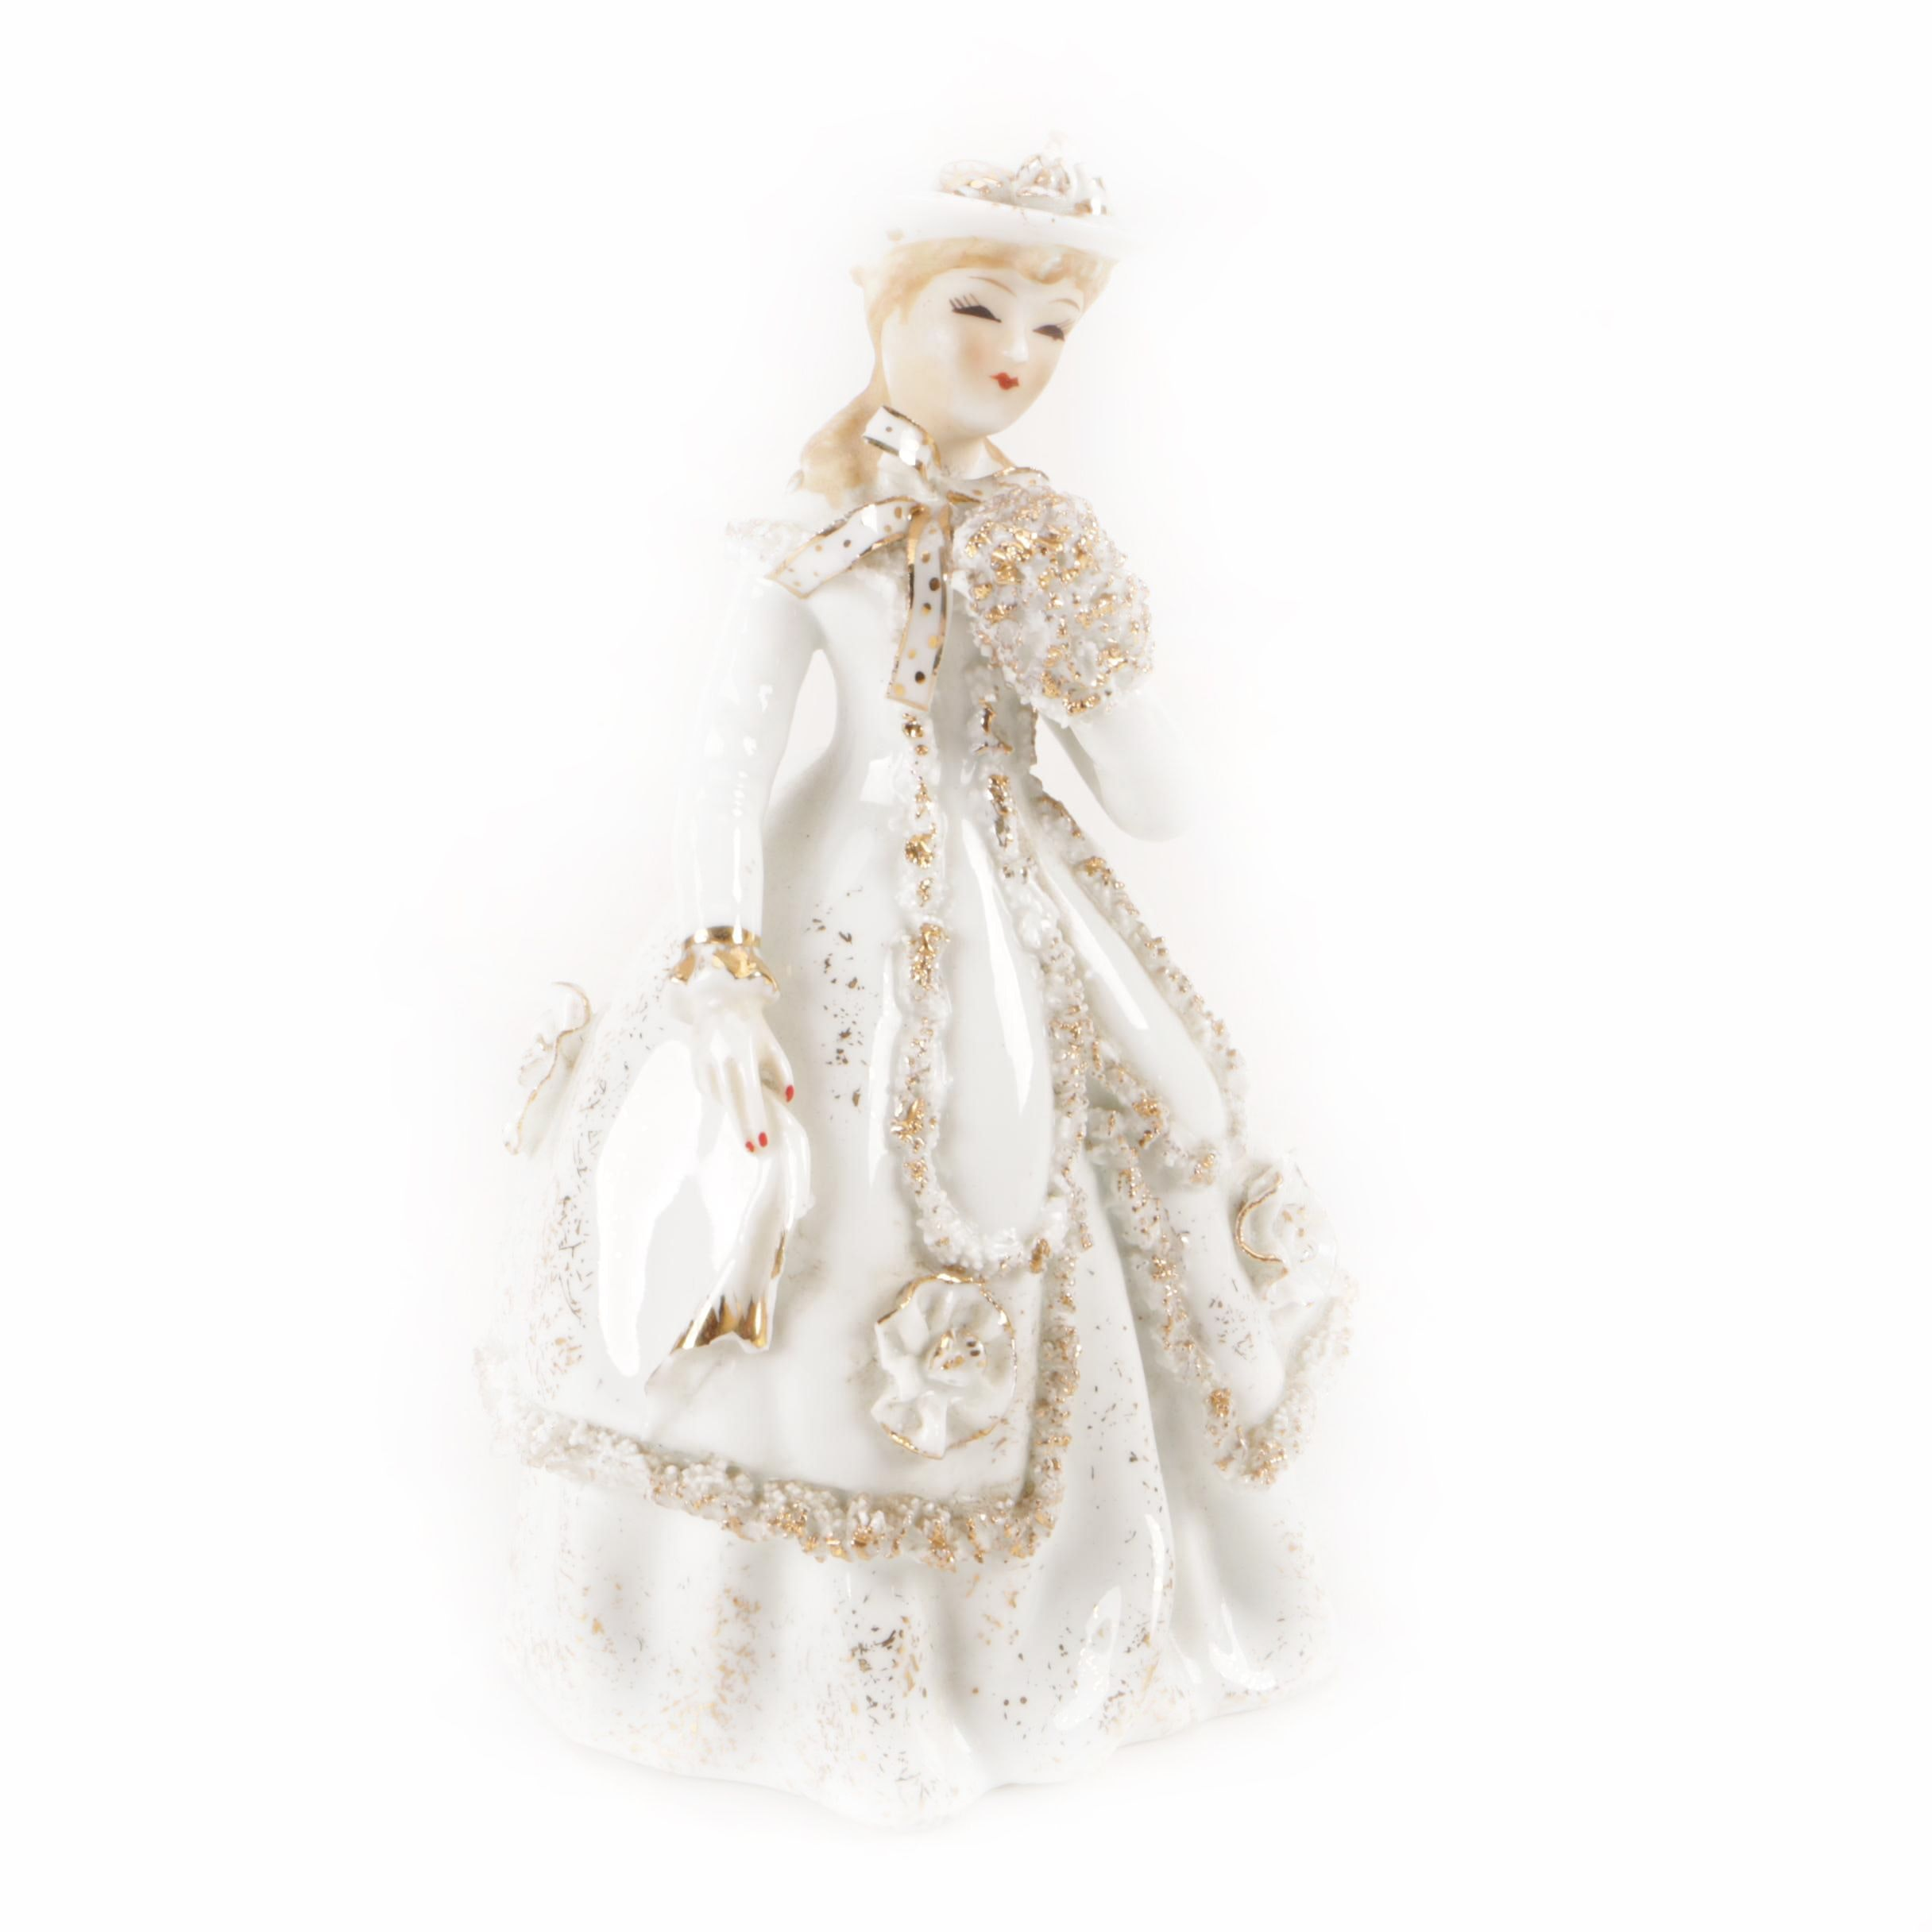 Lefton Hand-Painted Porcelain Figurine with Dress and Hat